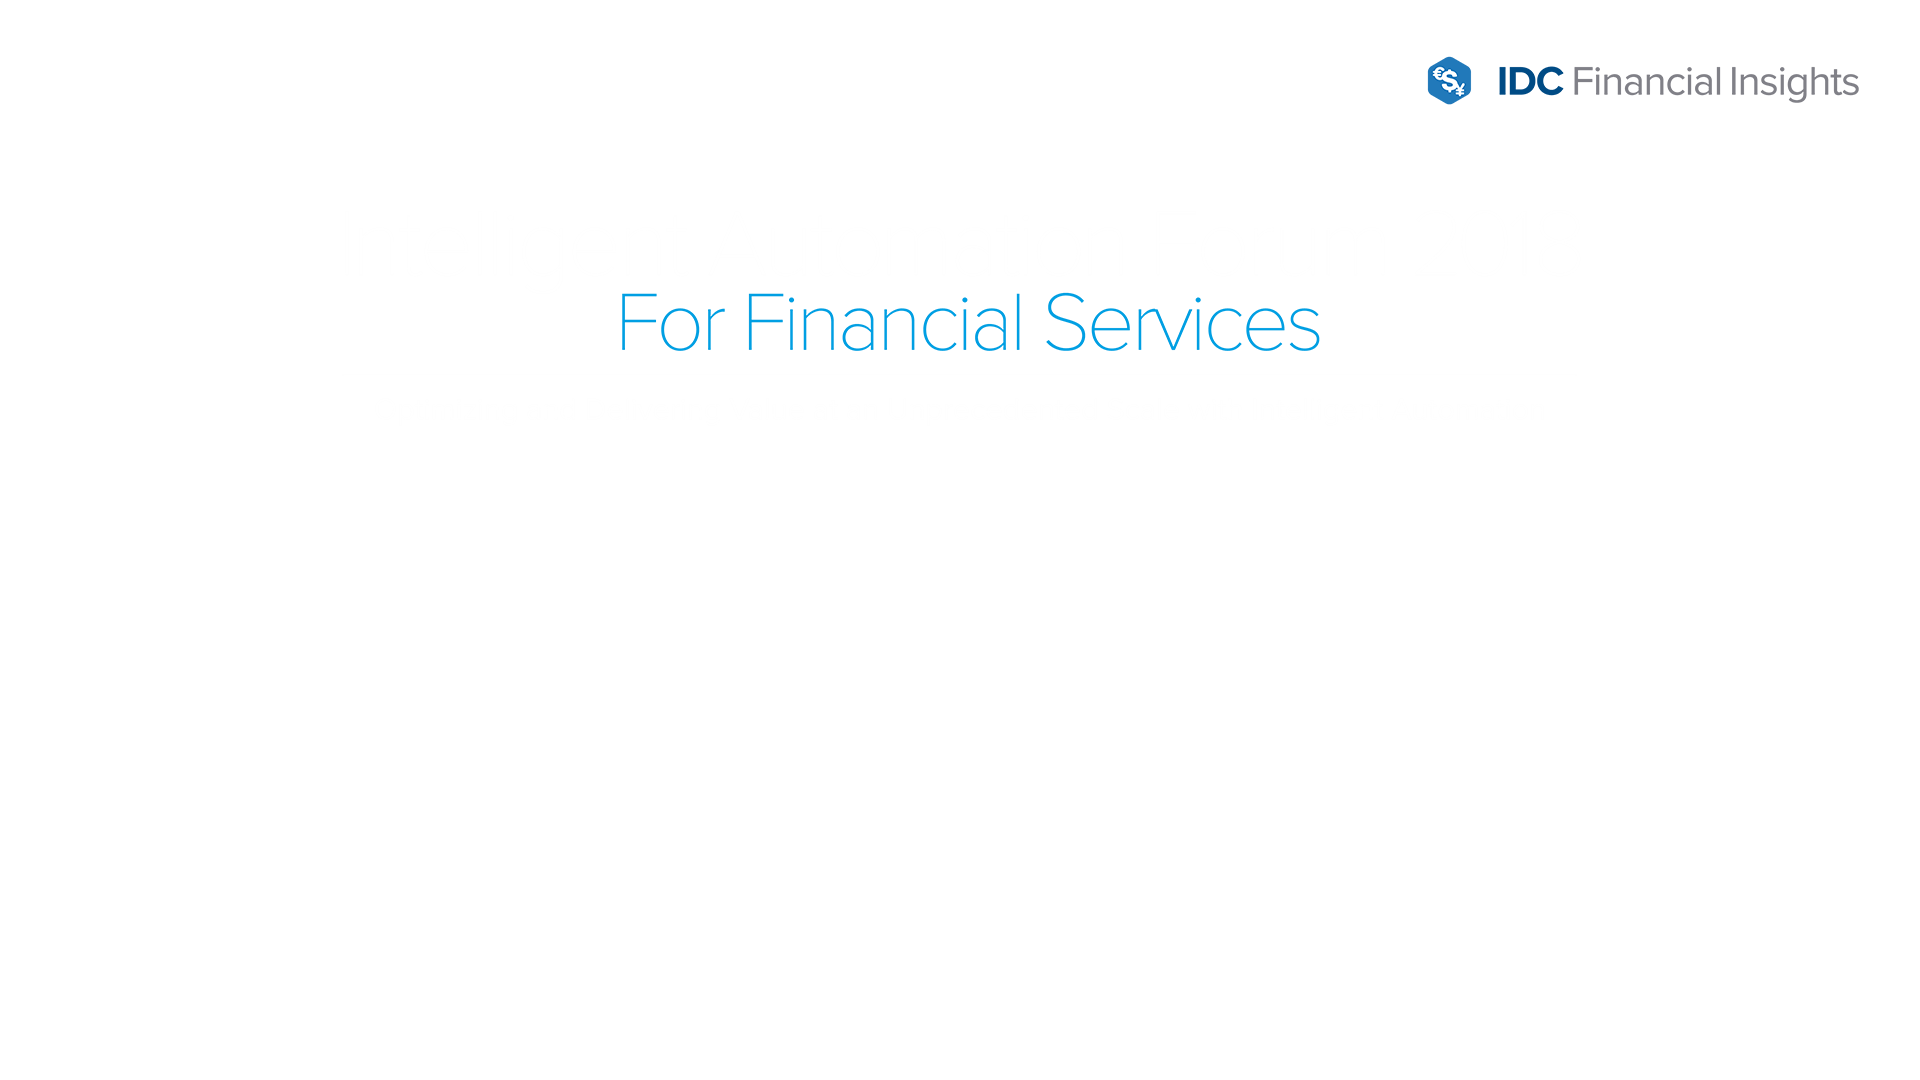 Intelligent Automation Forum 2018 Singapore